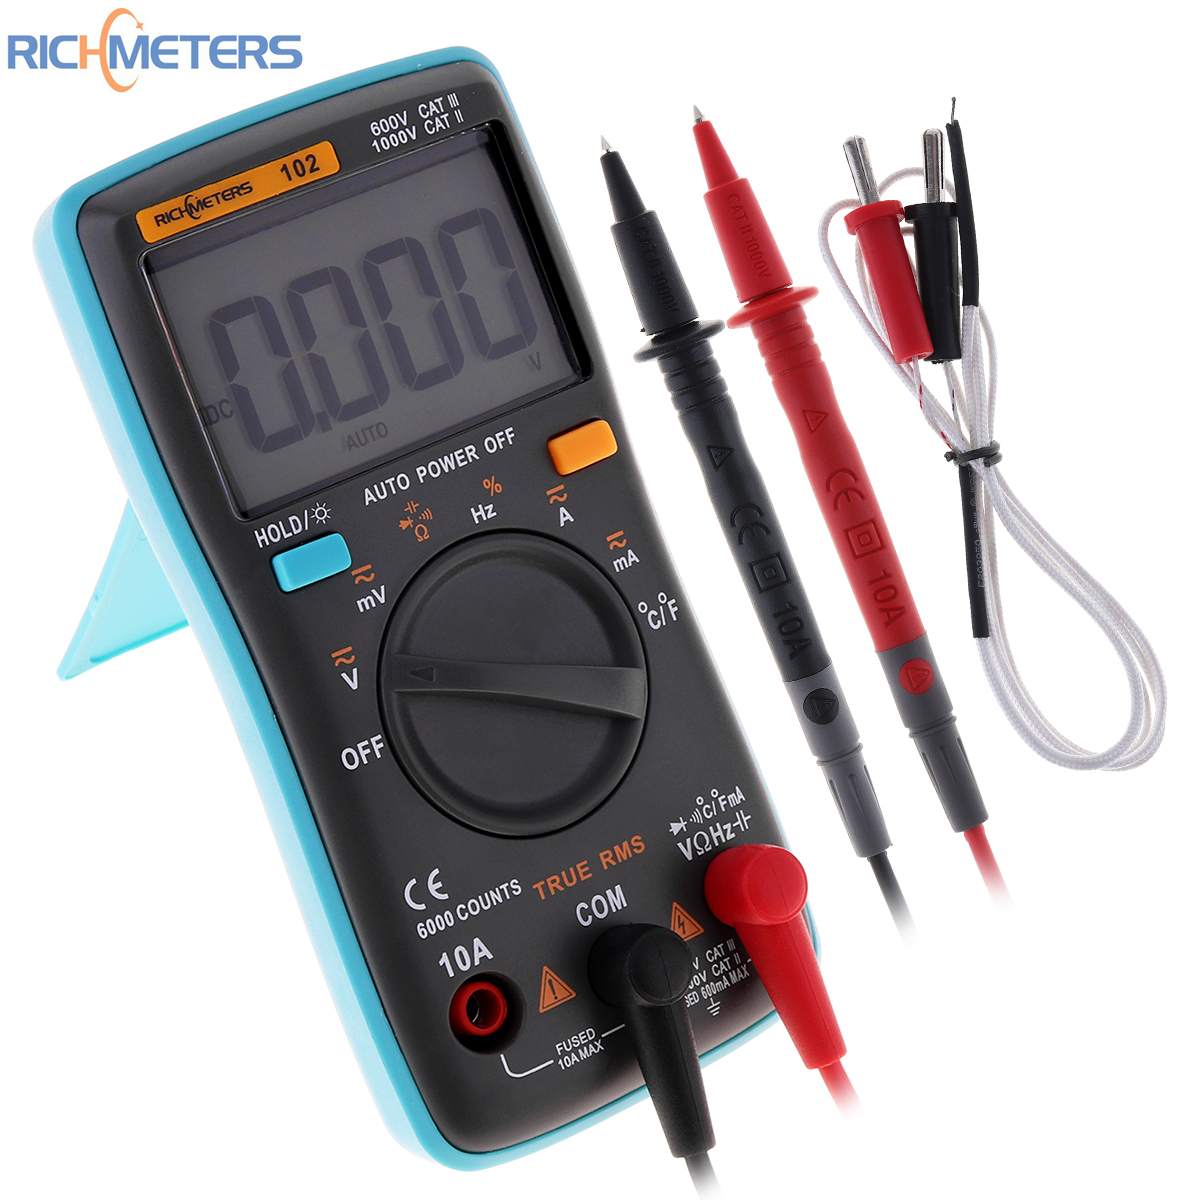 RICHMETERS RM102 Multimeter AC / DC Ammeter 6000 Counts Voltmeter Ohm Frequency Diode with Temperature Test Function